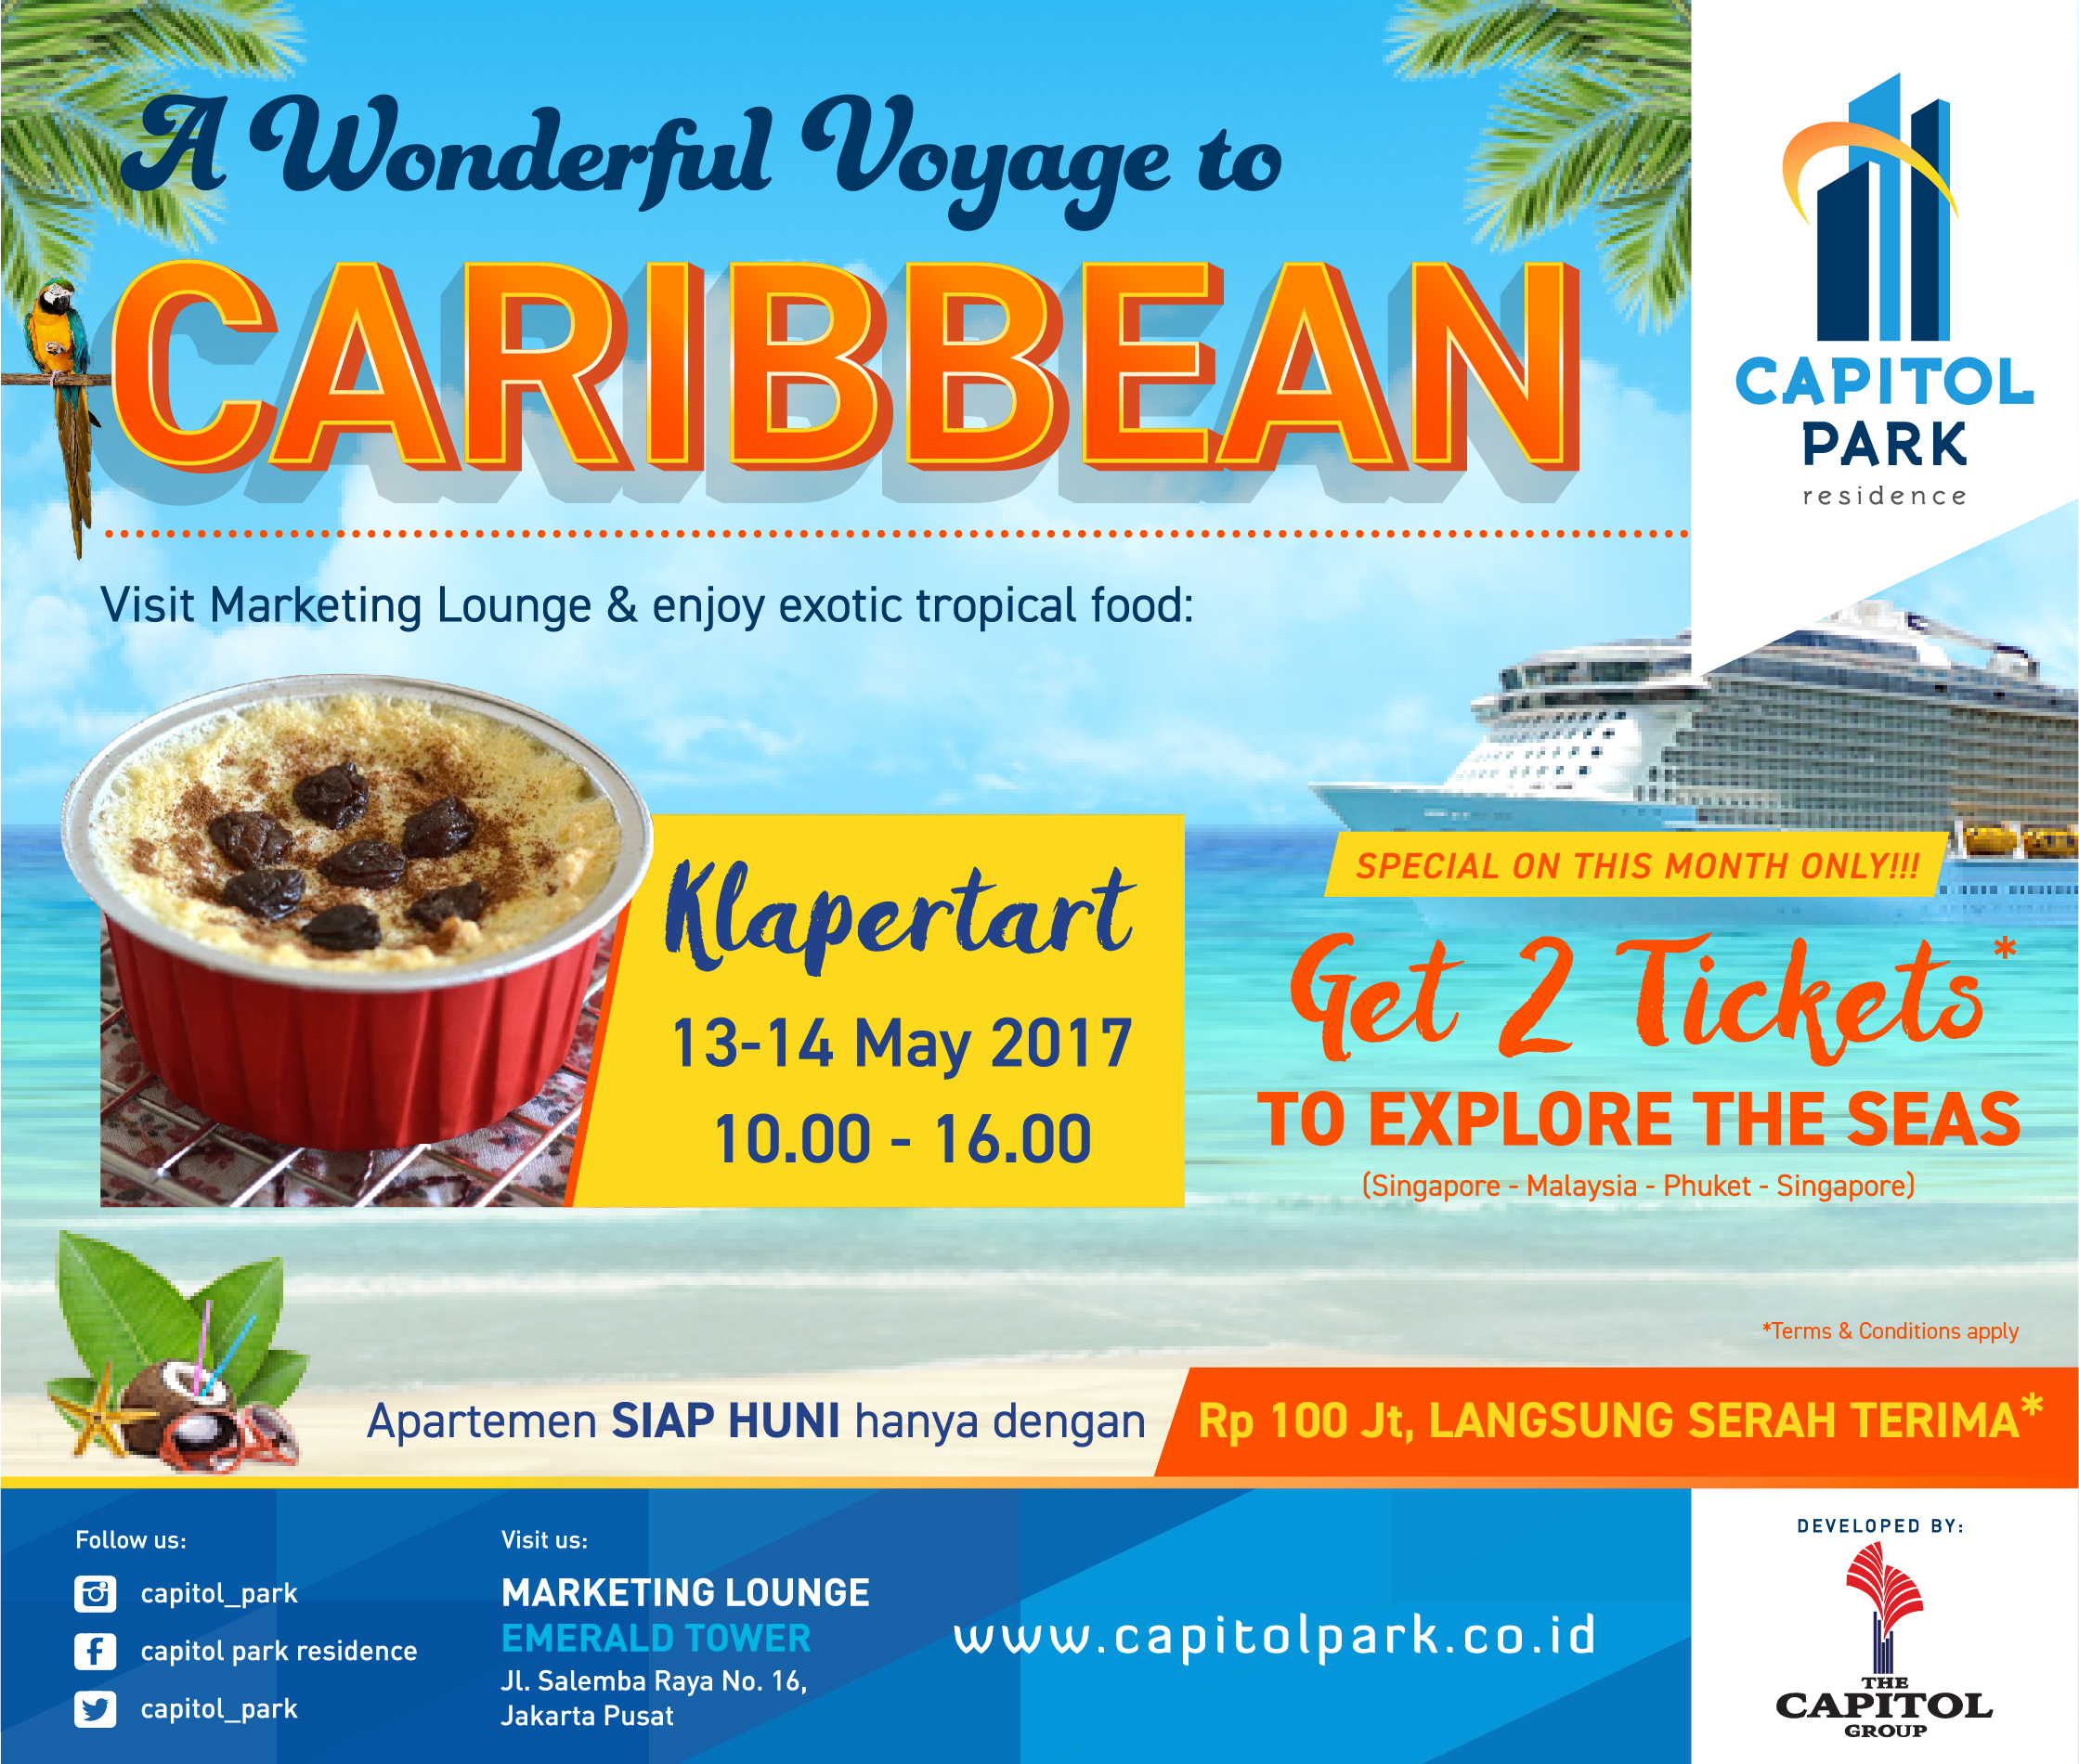 Capitol Park News - A Wonderful Voyage to Caribbean - Klappertart